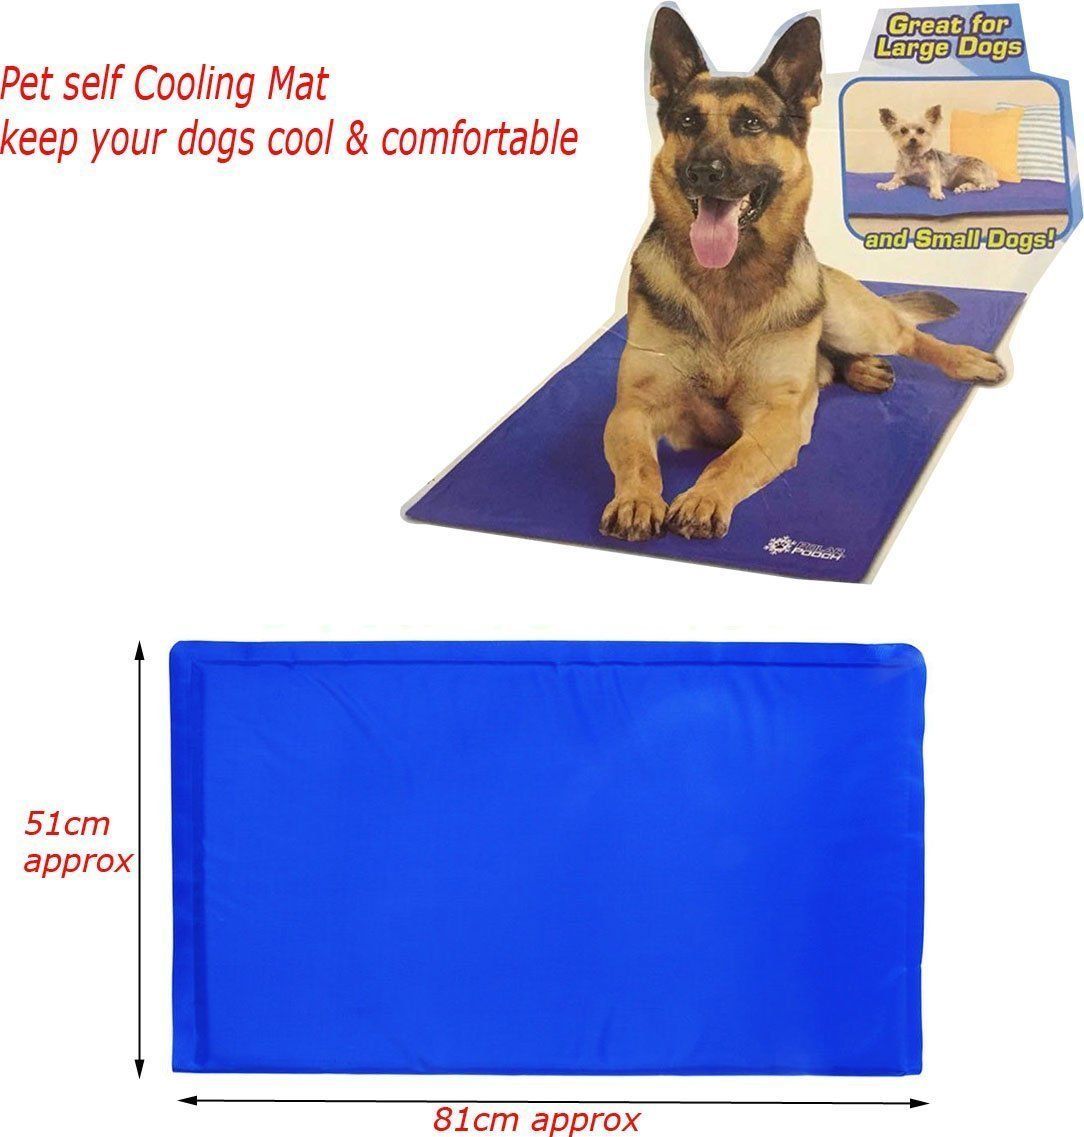 Ahandr International 81cm X 51cm Large Cool Mat Self Cooling Gel Mat Pet Dog Cat Heat Relief Non Toxic Summer You Can Ge Cat In Heat Dog Supplies List Dogs